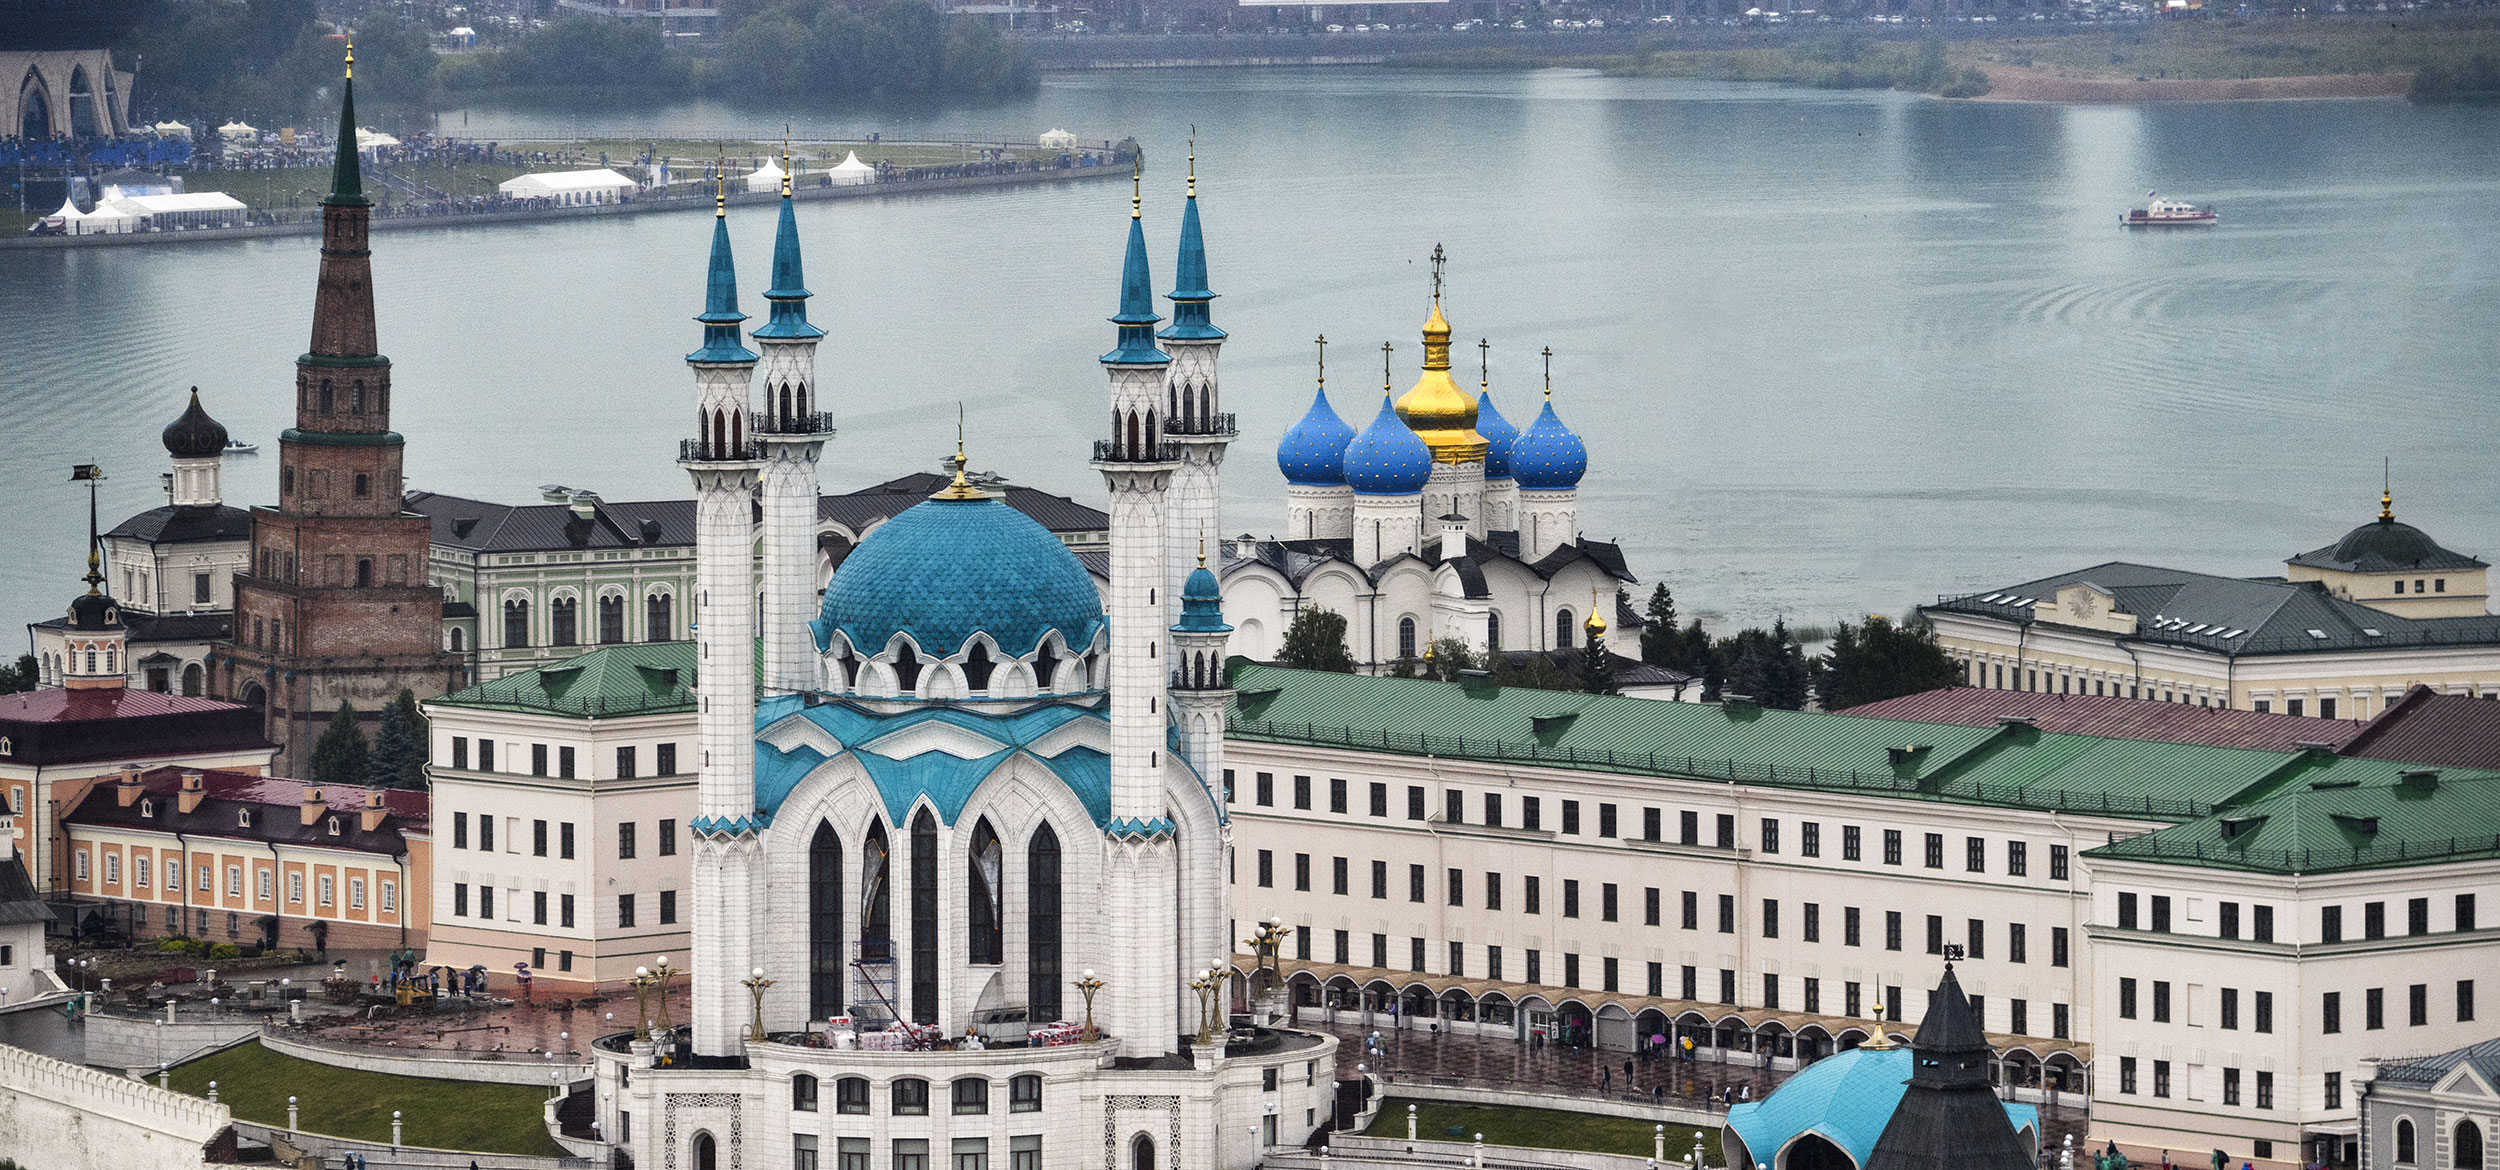 View of Kazan Kremlin and River Kazanka in Kazan, Russia.